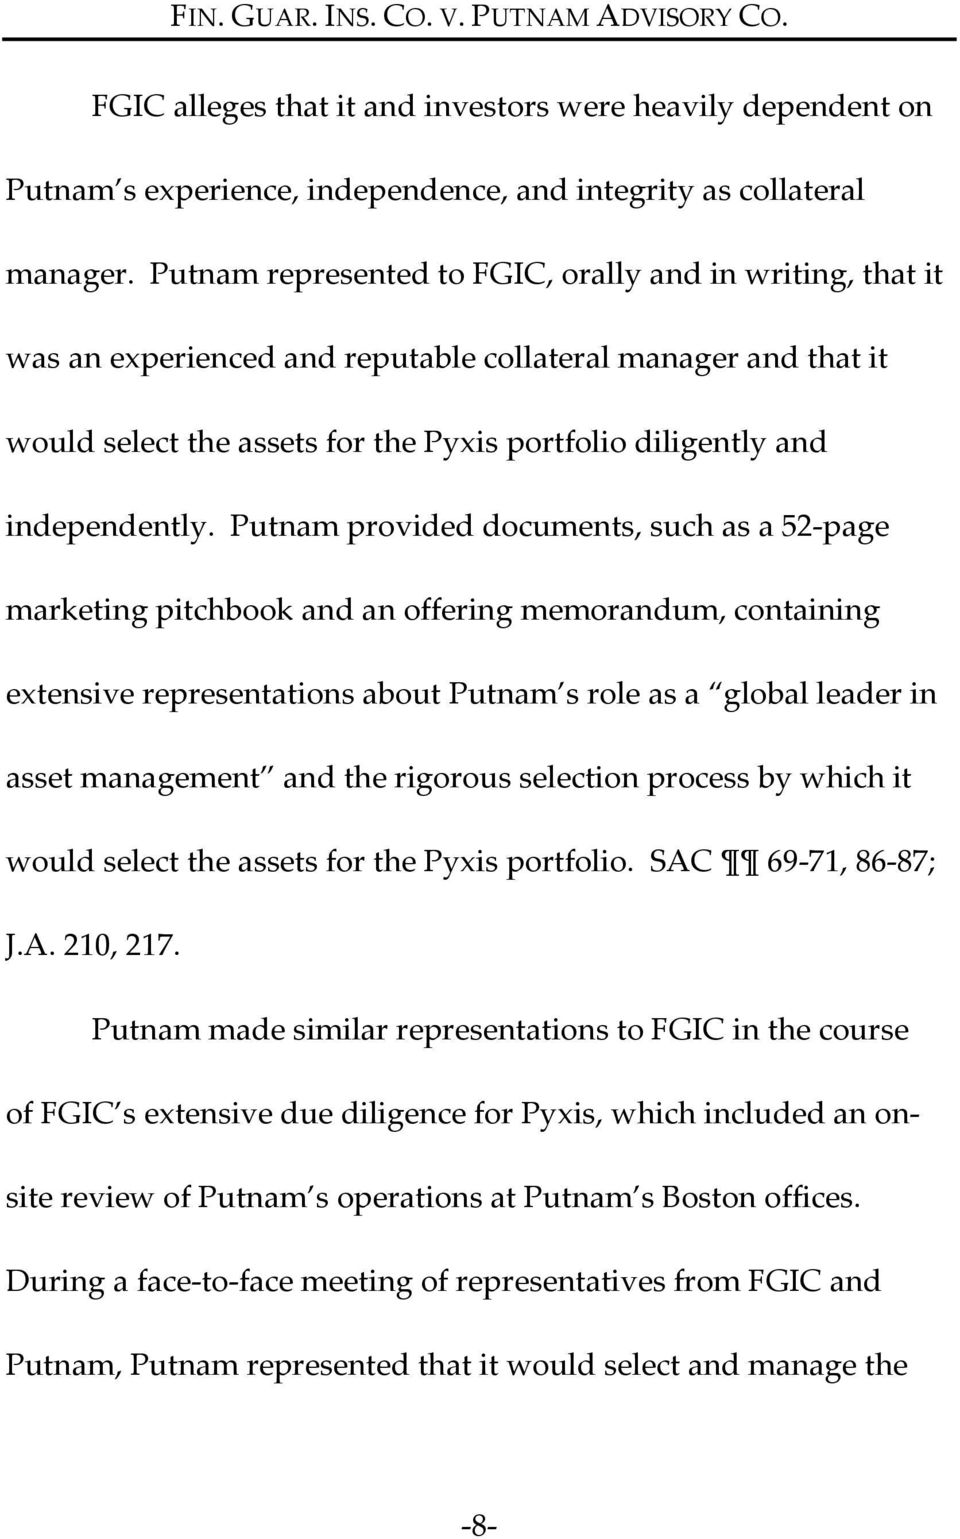 Putnam provided documents, such as a 52 page marketing pitchbook and an offering memorandum, containing extensive representations about Putnam s role as a global leader in asset management and the